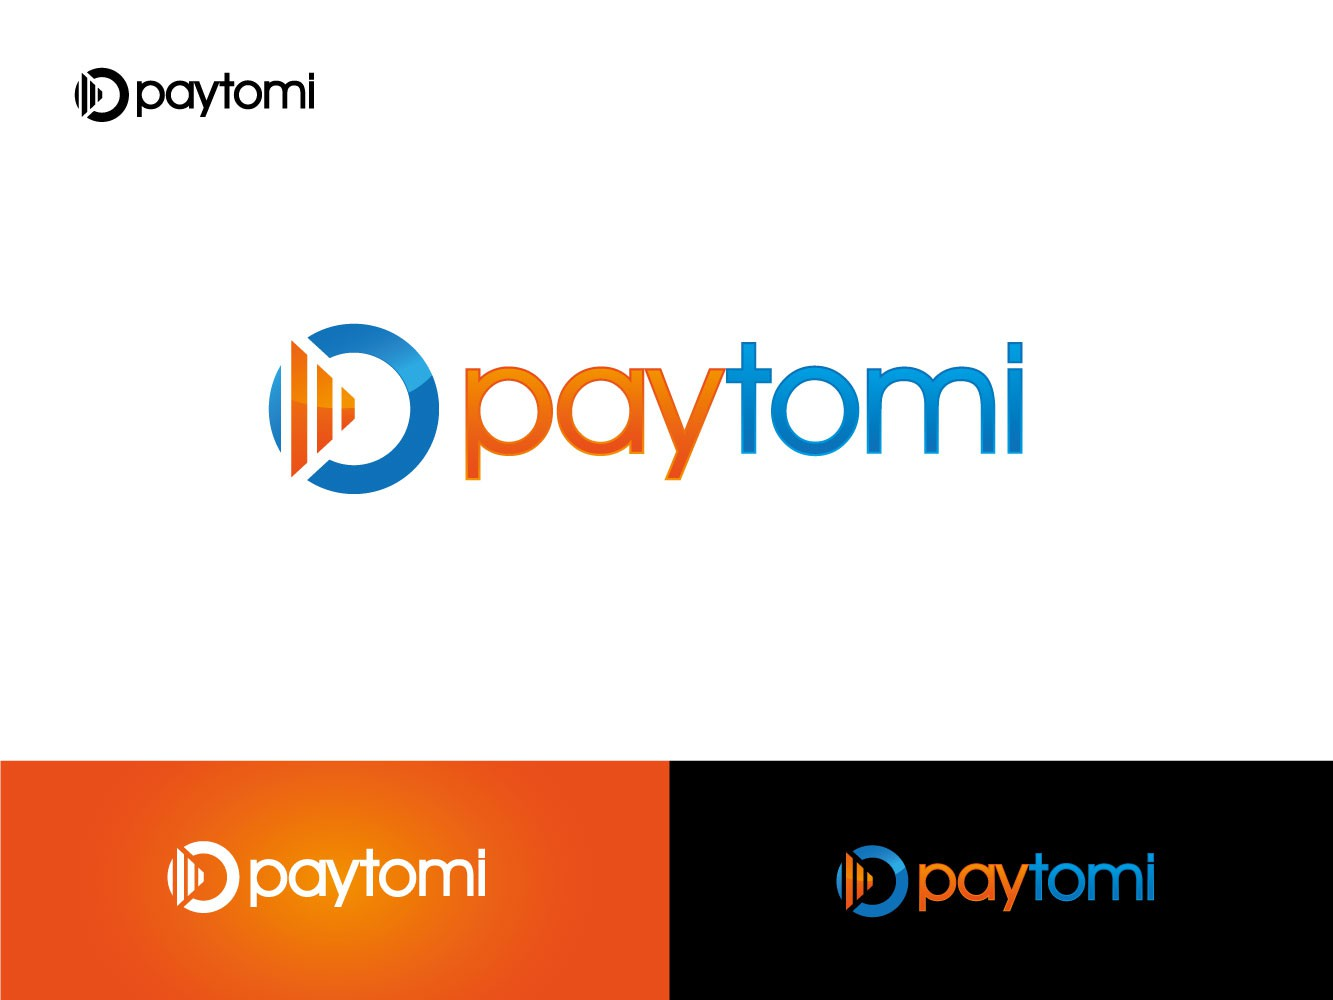 Help Paytomi with a new logo